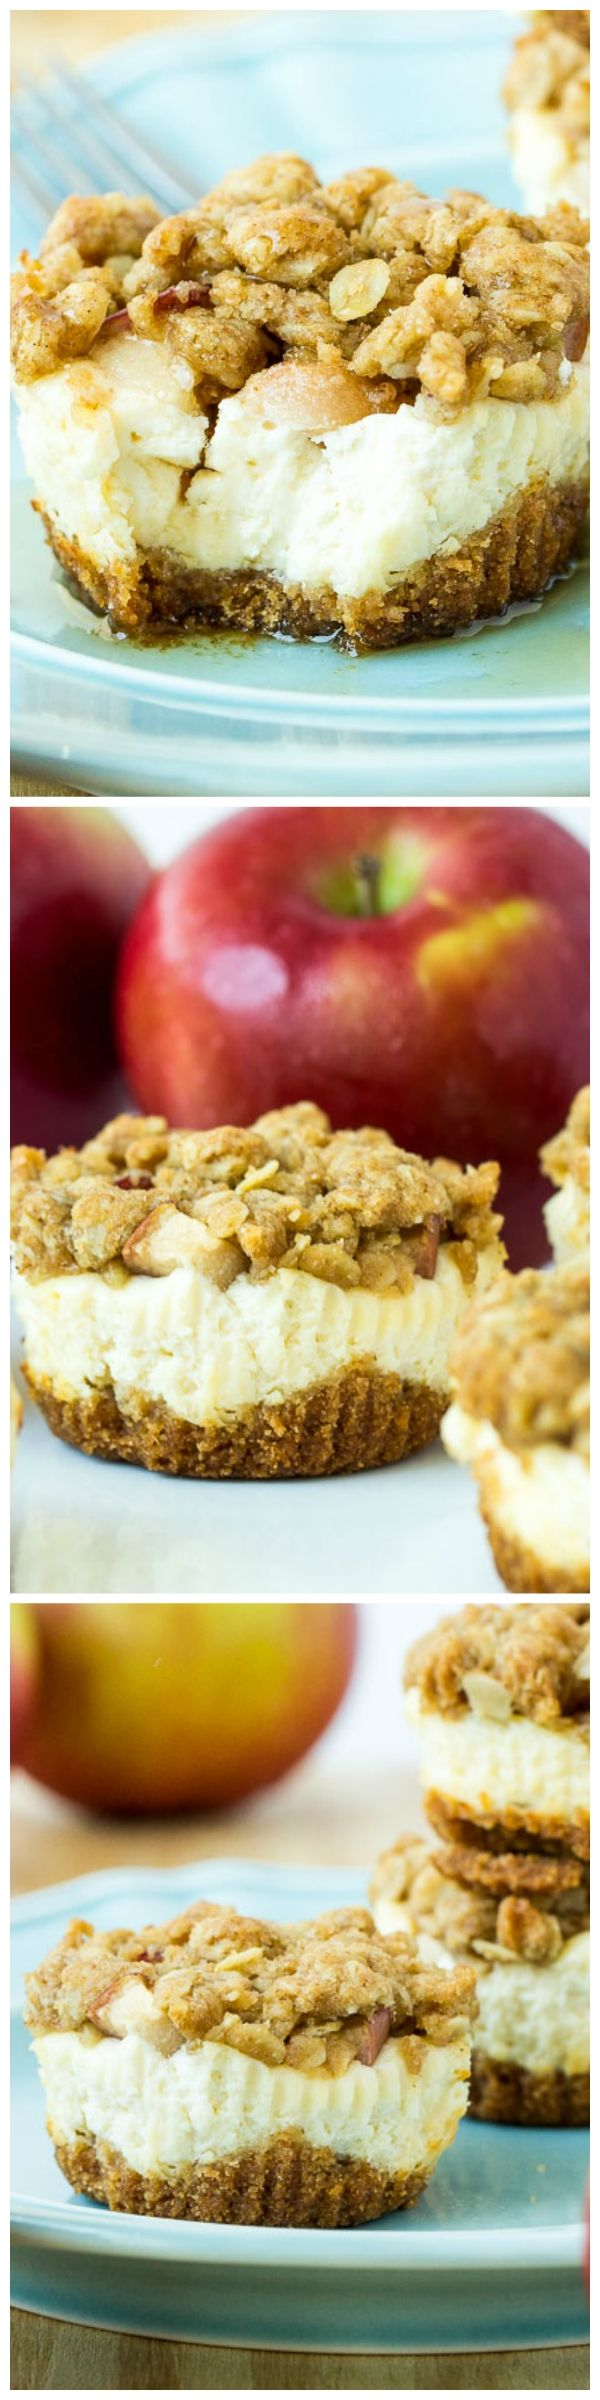 Mini cheesecakes topped with apples, peaches, or other fruit and crunchy streusel: one of my favorite fall recipes and cheesecake combined!